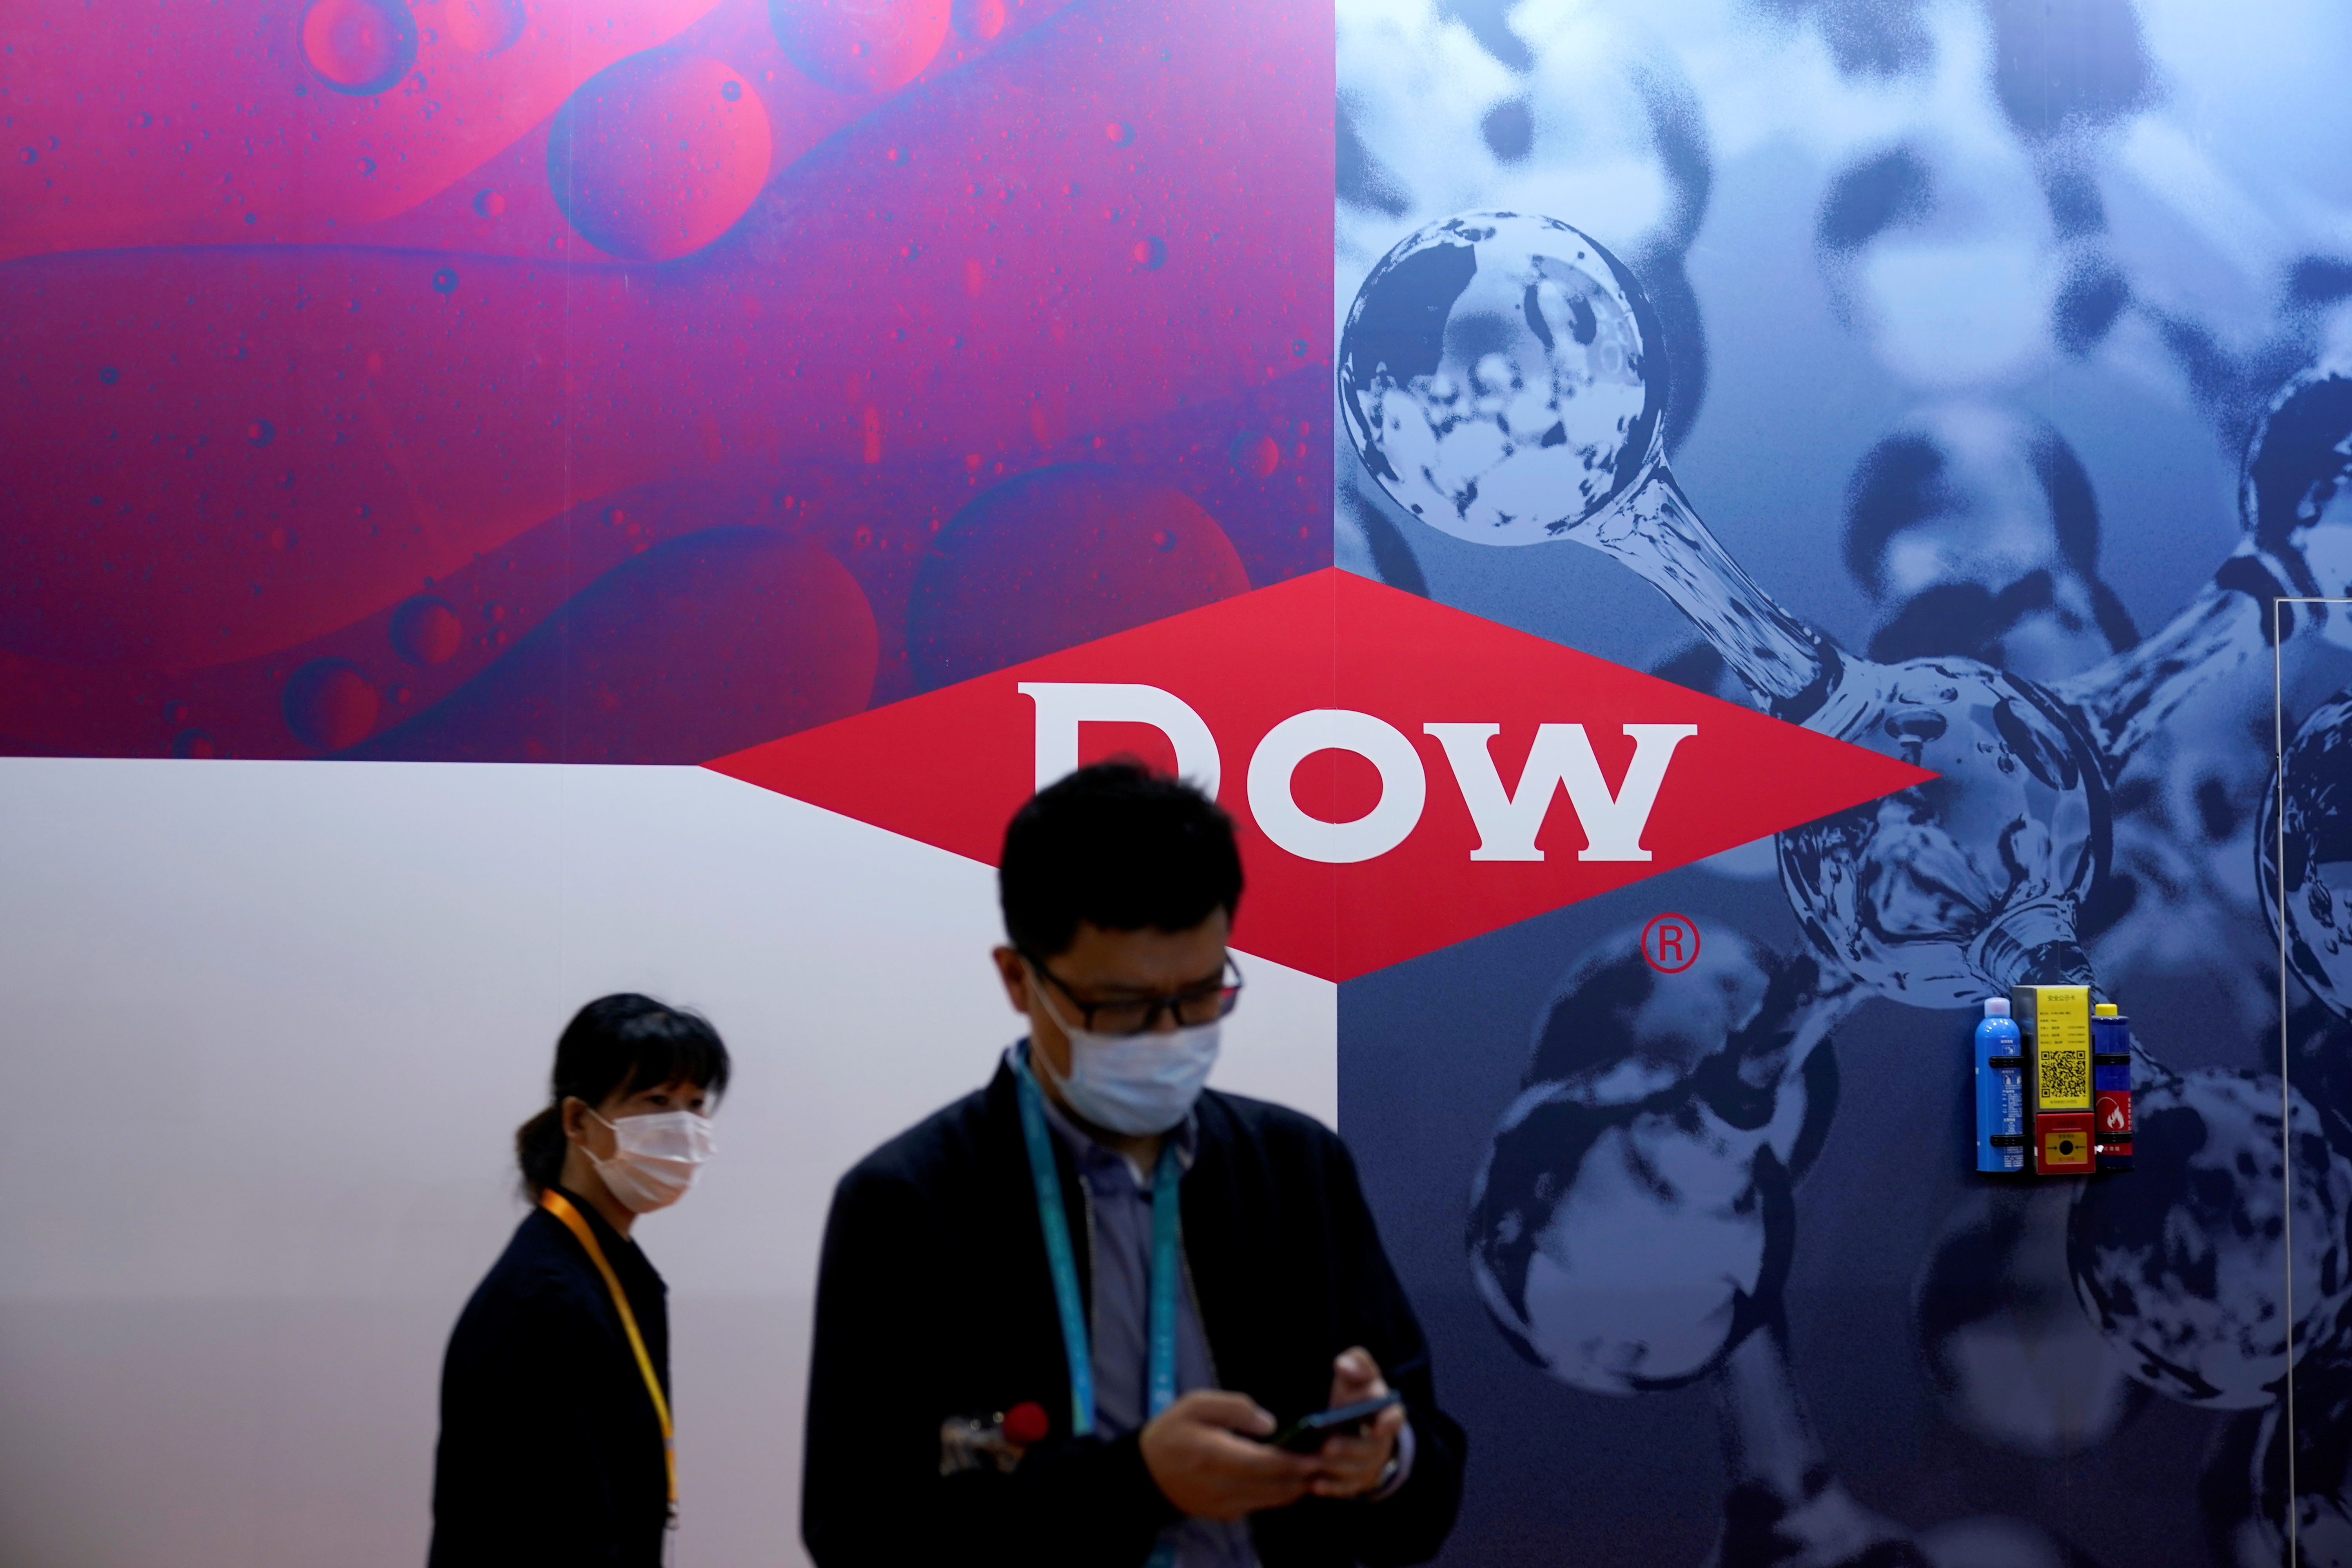 A Dow sign is seen at the third China International Import Expo (CIIE) in Shanghai, China November 5, 2020. REUTERS/Aly Song/File Photo